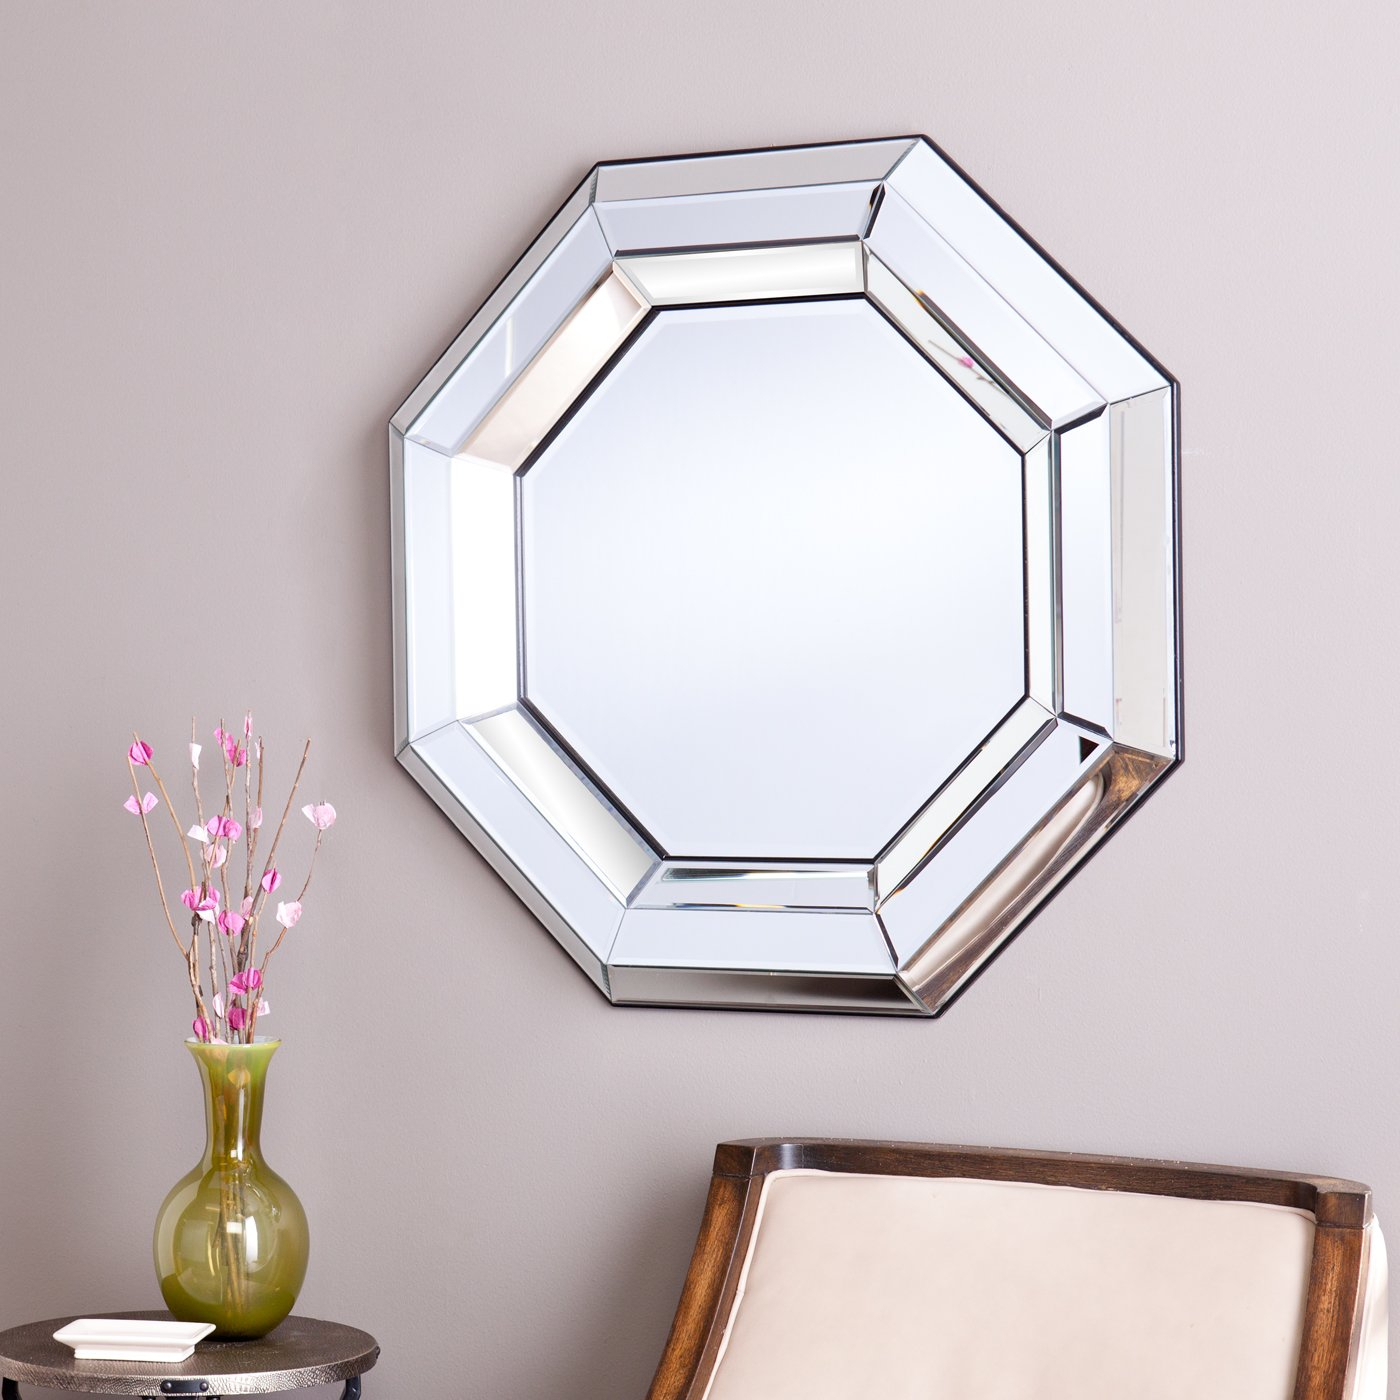 Decorative Wall Mirrors Wade Logan Decorative Wall Mirror in Boyers Wall Mirrors (Image 14 of 30)